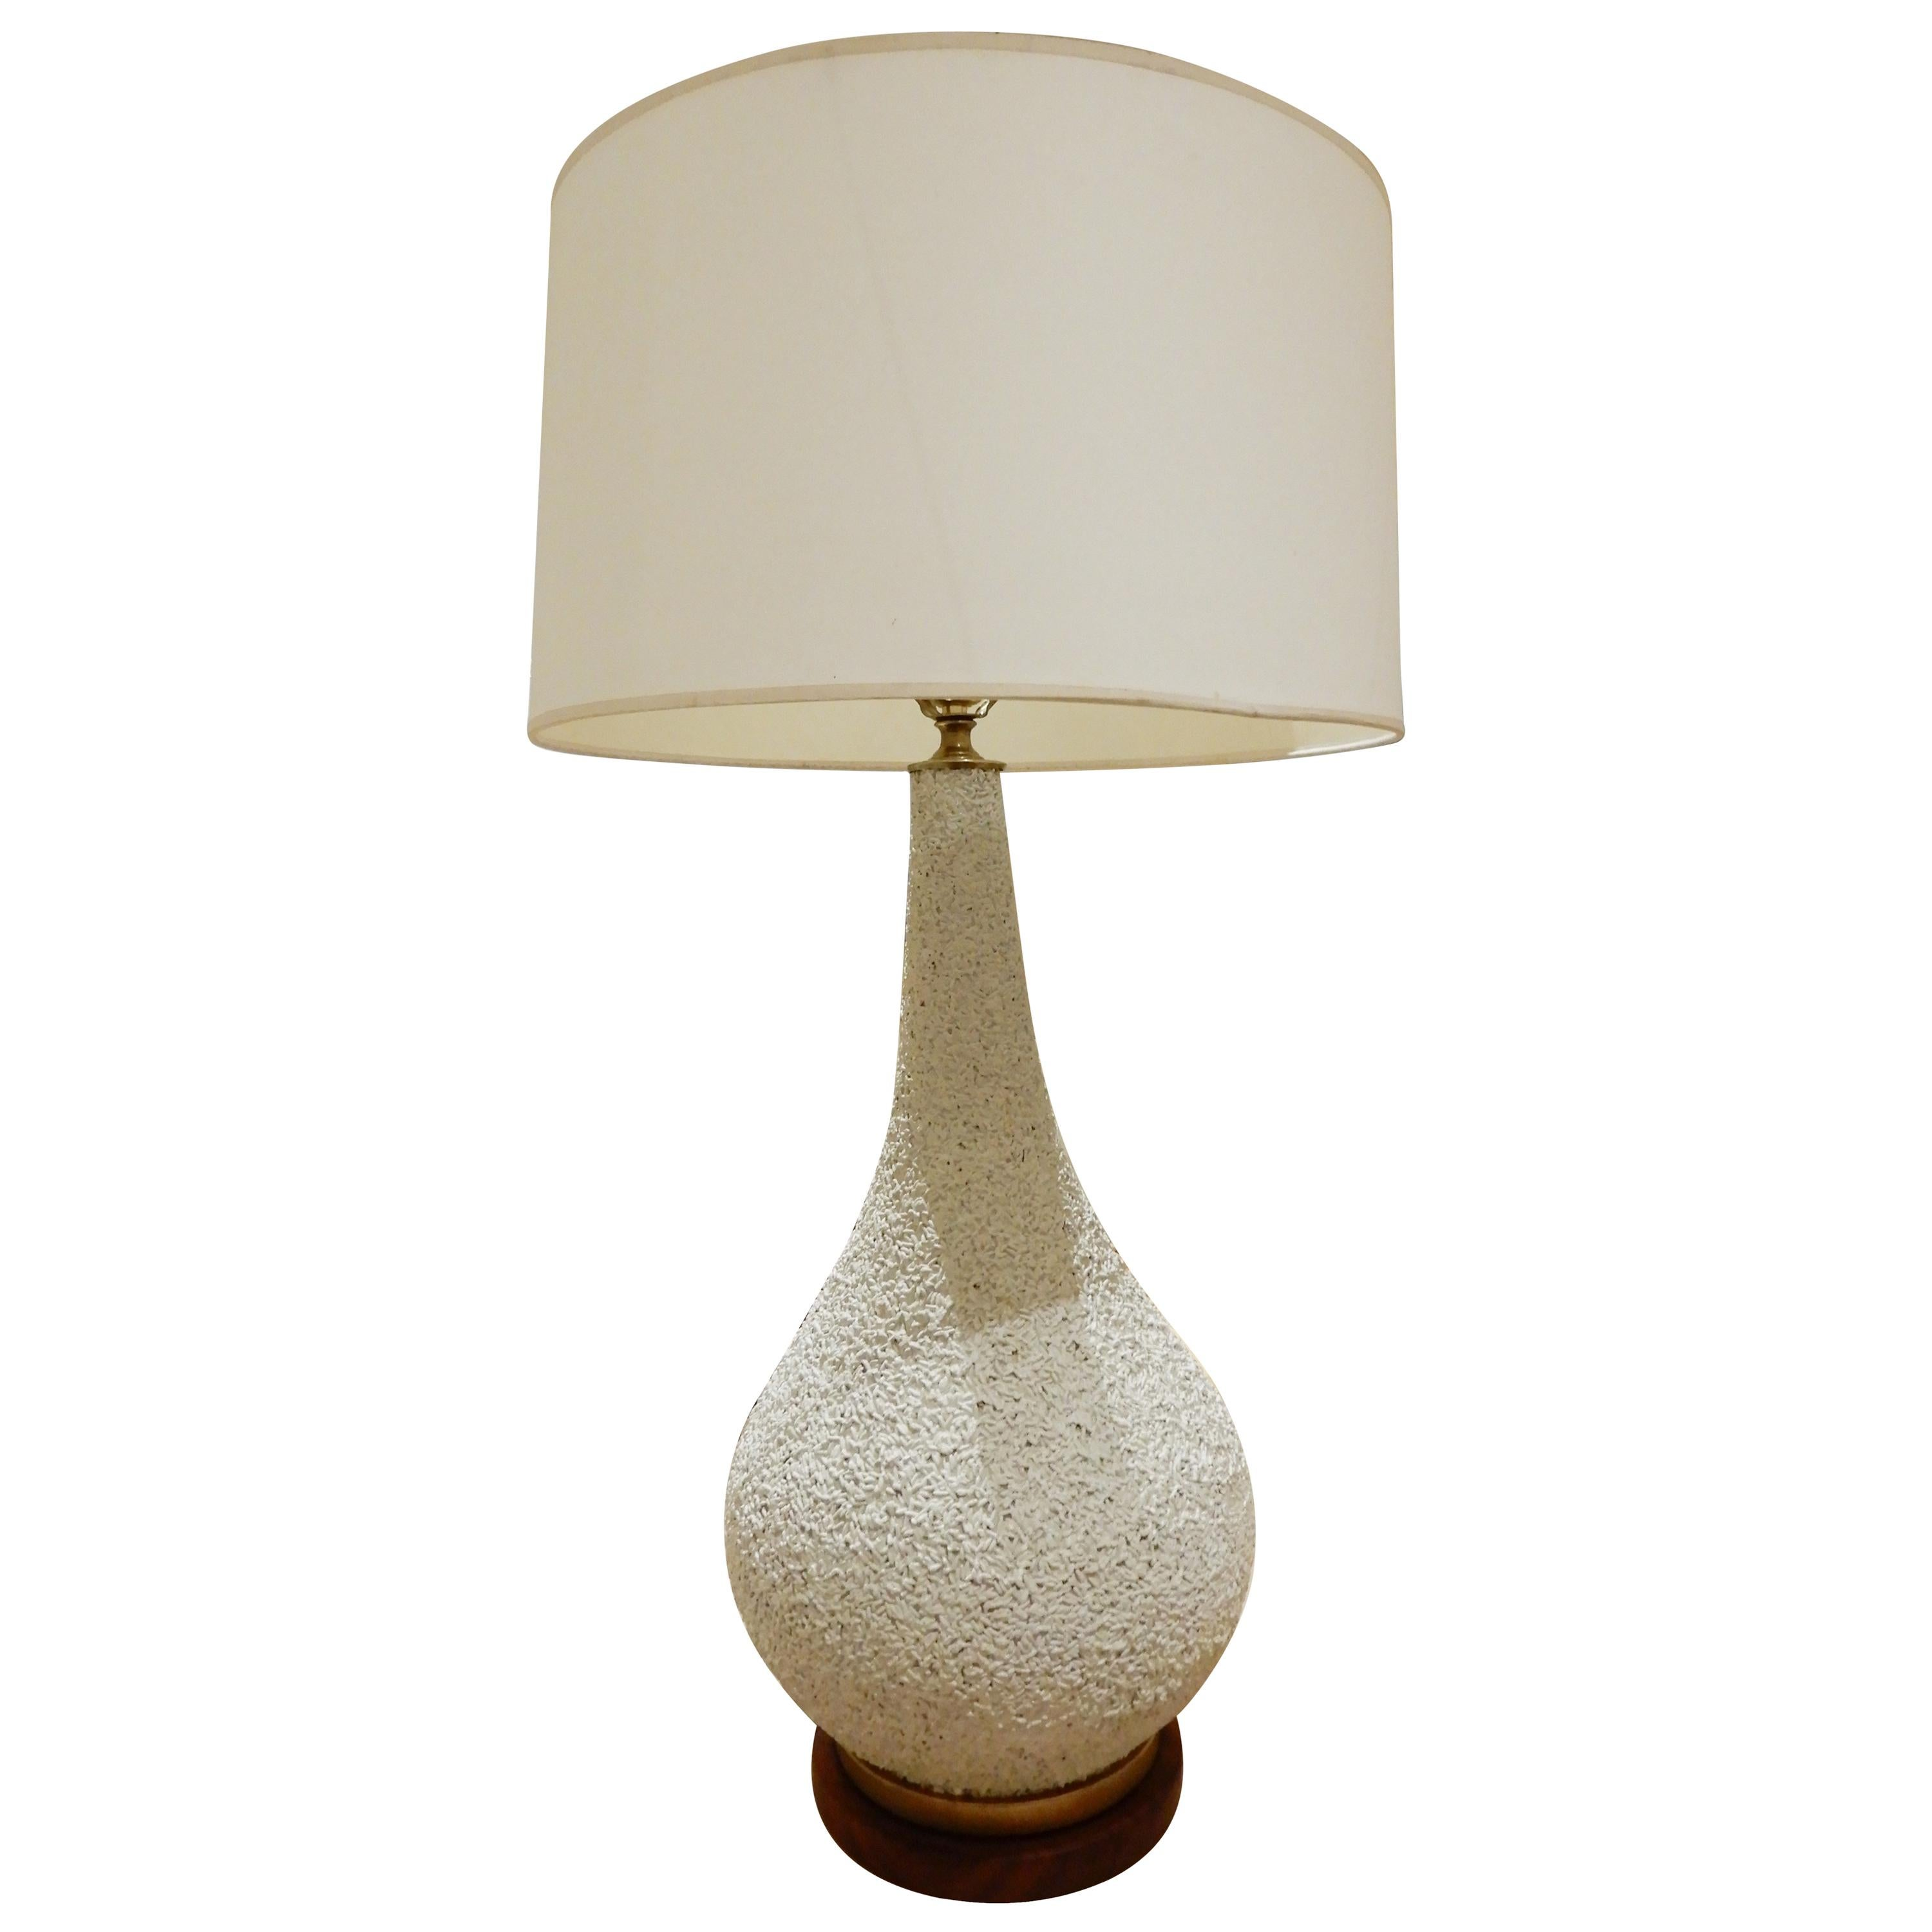 1950s Plaster Organic Form Lamp in the Manner of Jean Michel Frank